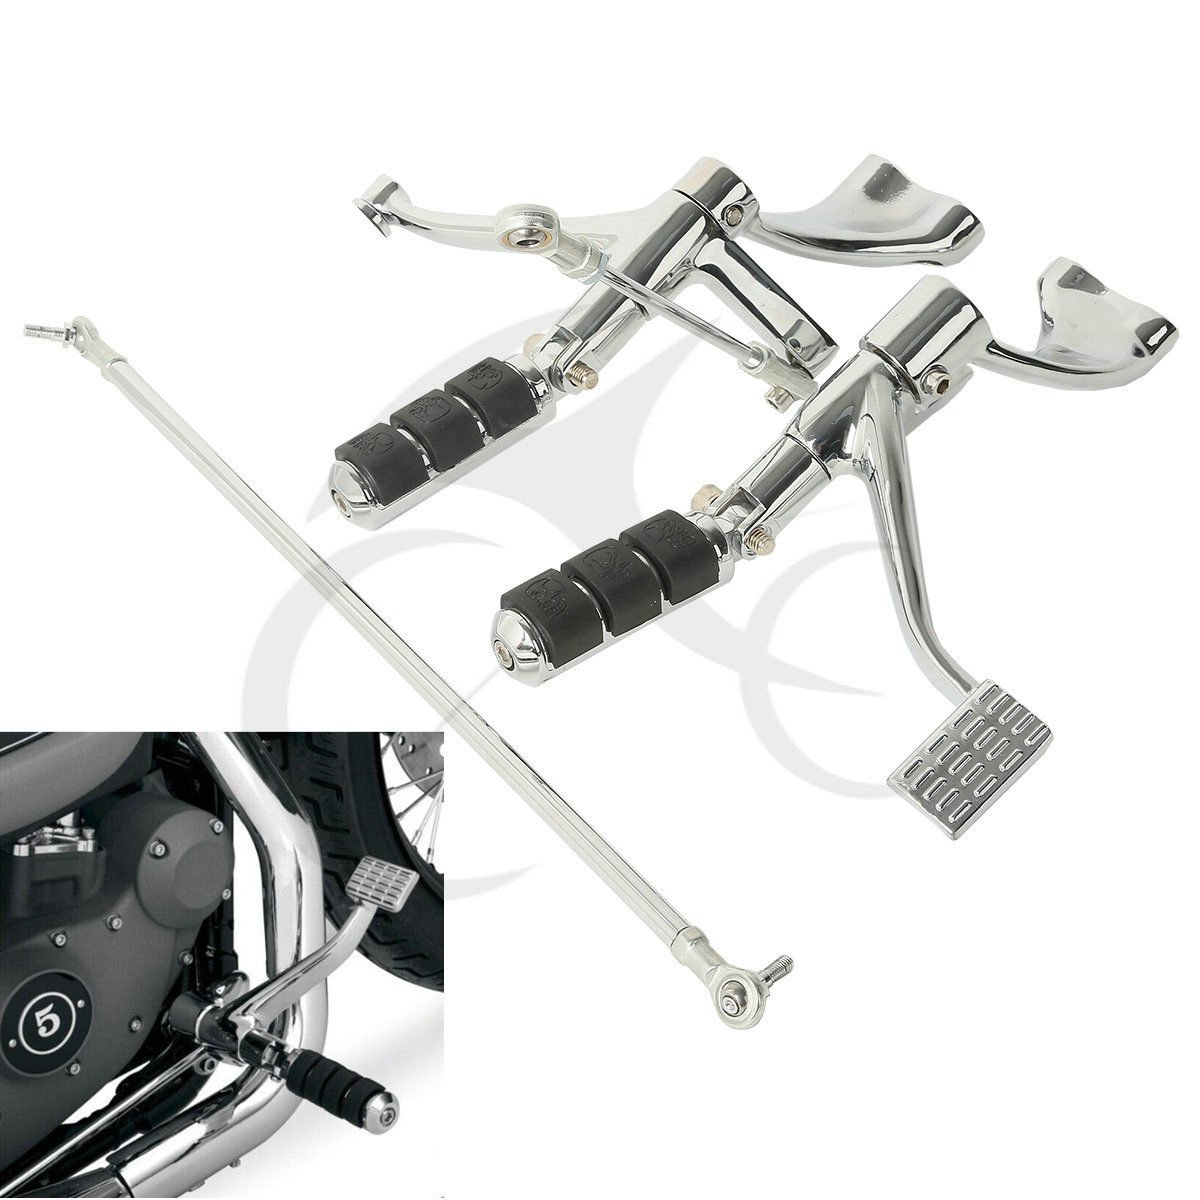 TCMT Motor Chrome Forward Controls Pegs Levers Linkages For Harley Sportster 883 Iron (XL883N)2009 10 11 12 2013 Sportster 883 Low(XL883L) 2005 06 07 08 09 2010